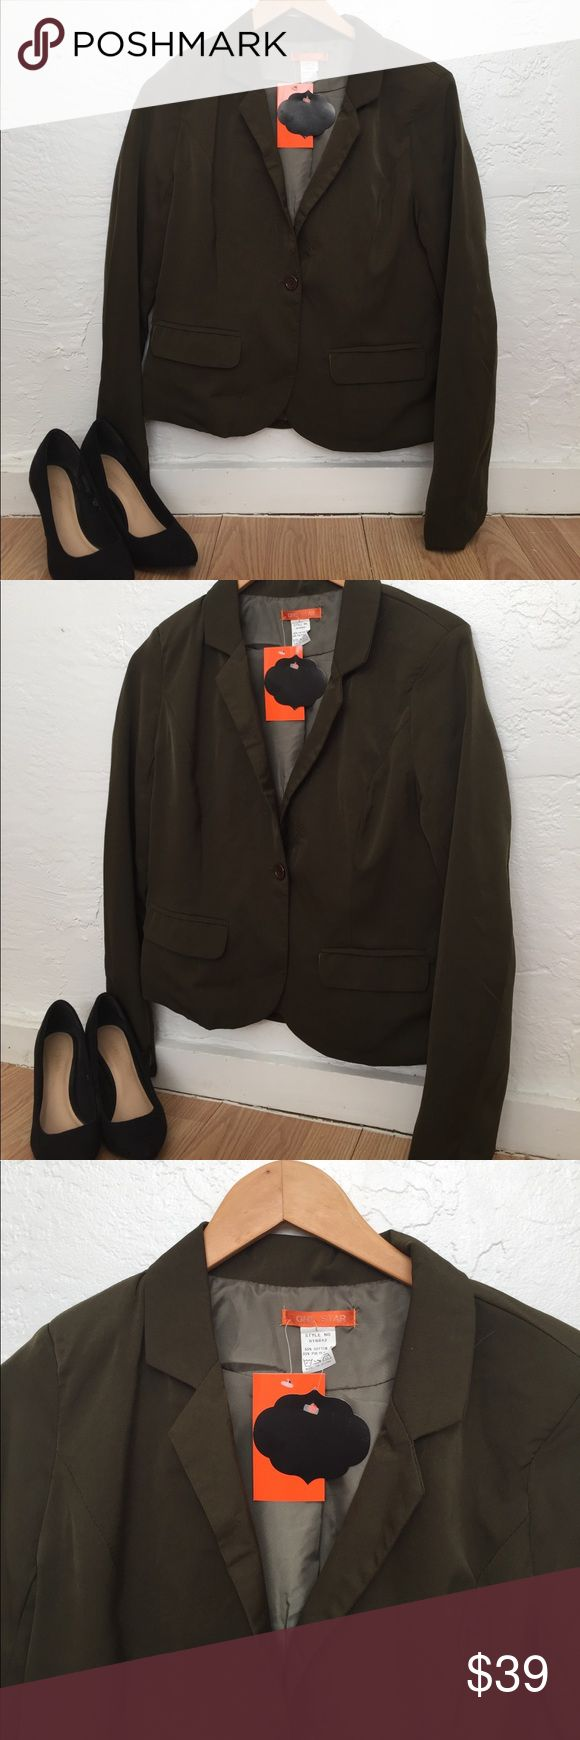 NWT Olive green blazer Olive green blazer size large from One Star.  Bust18 length 23. New with tag. One Star Jackets & Coats Blazers